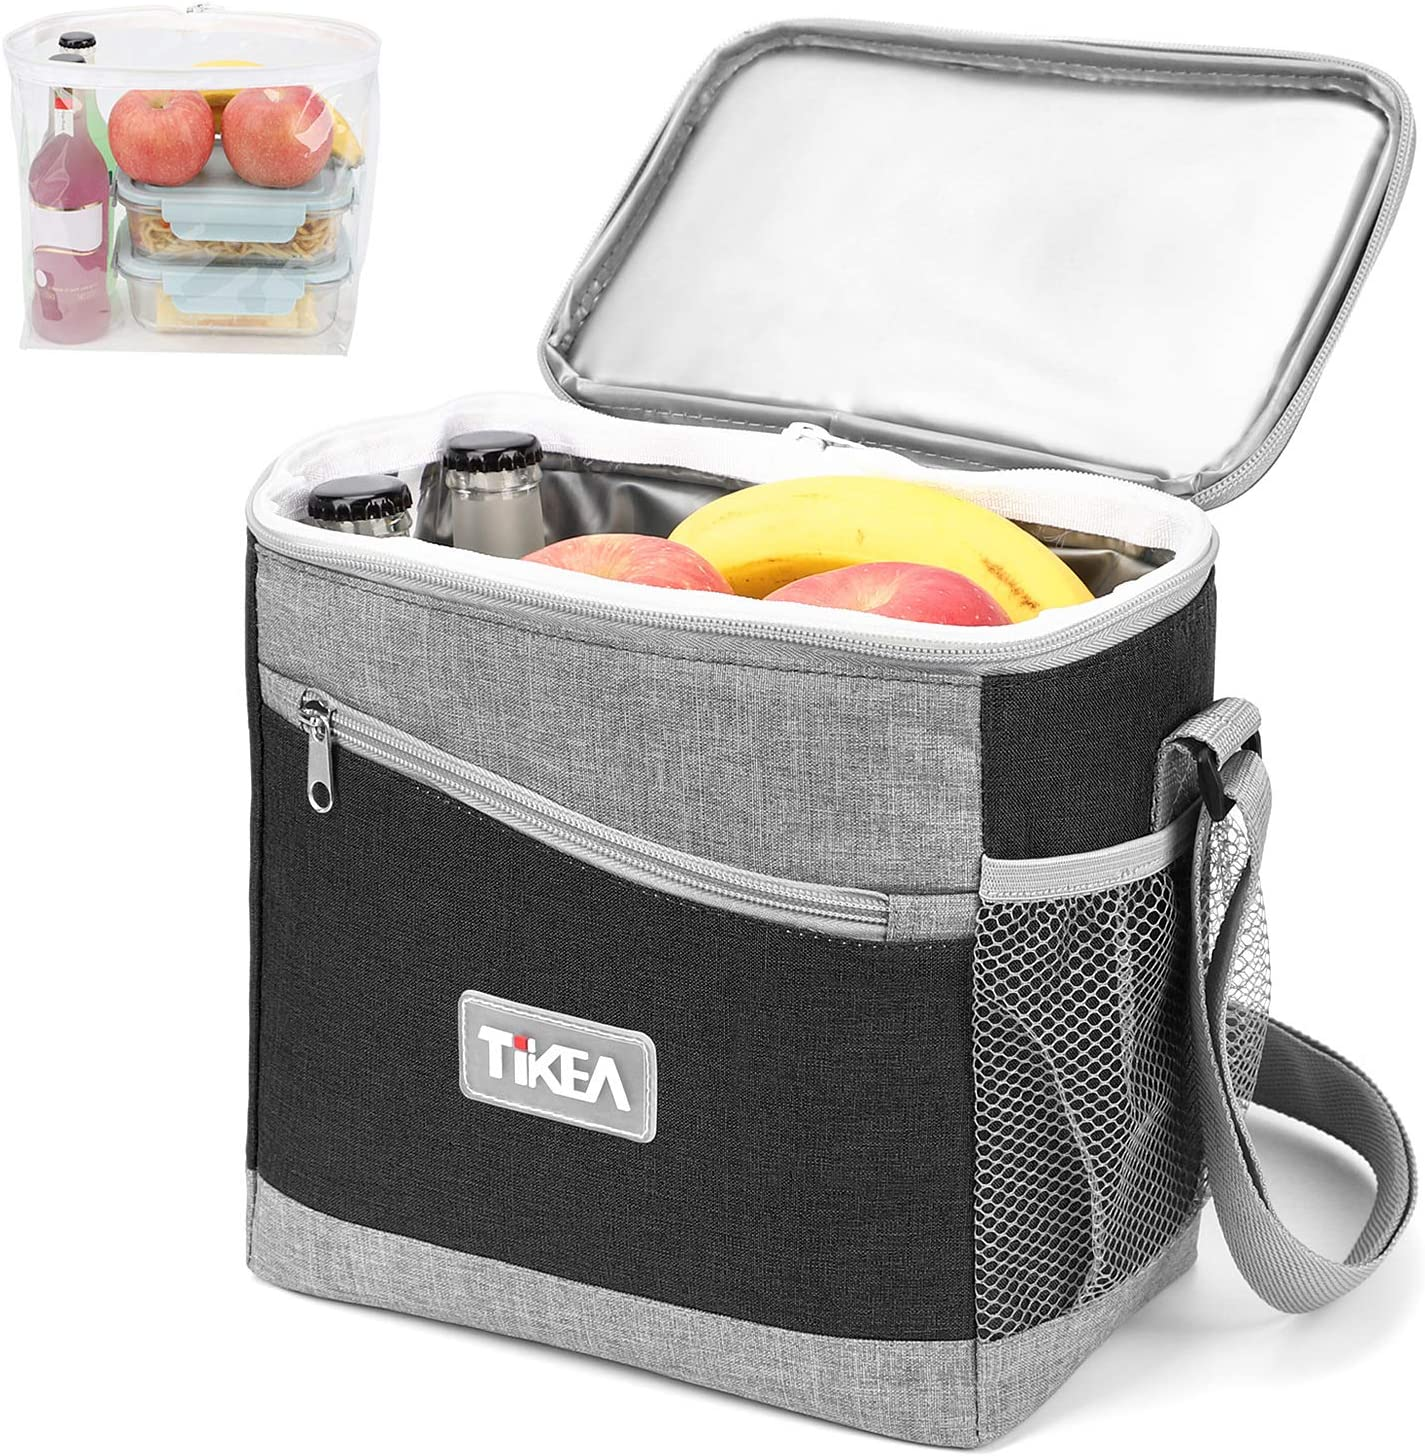 Tikea Insulated Lunch Bag - Lunch Tote Bag Thermal Lunch Box for Work School Men Women, Waterproof and Leakproof Removable Liner